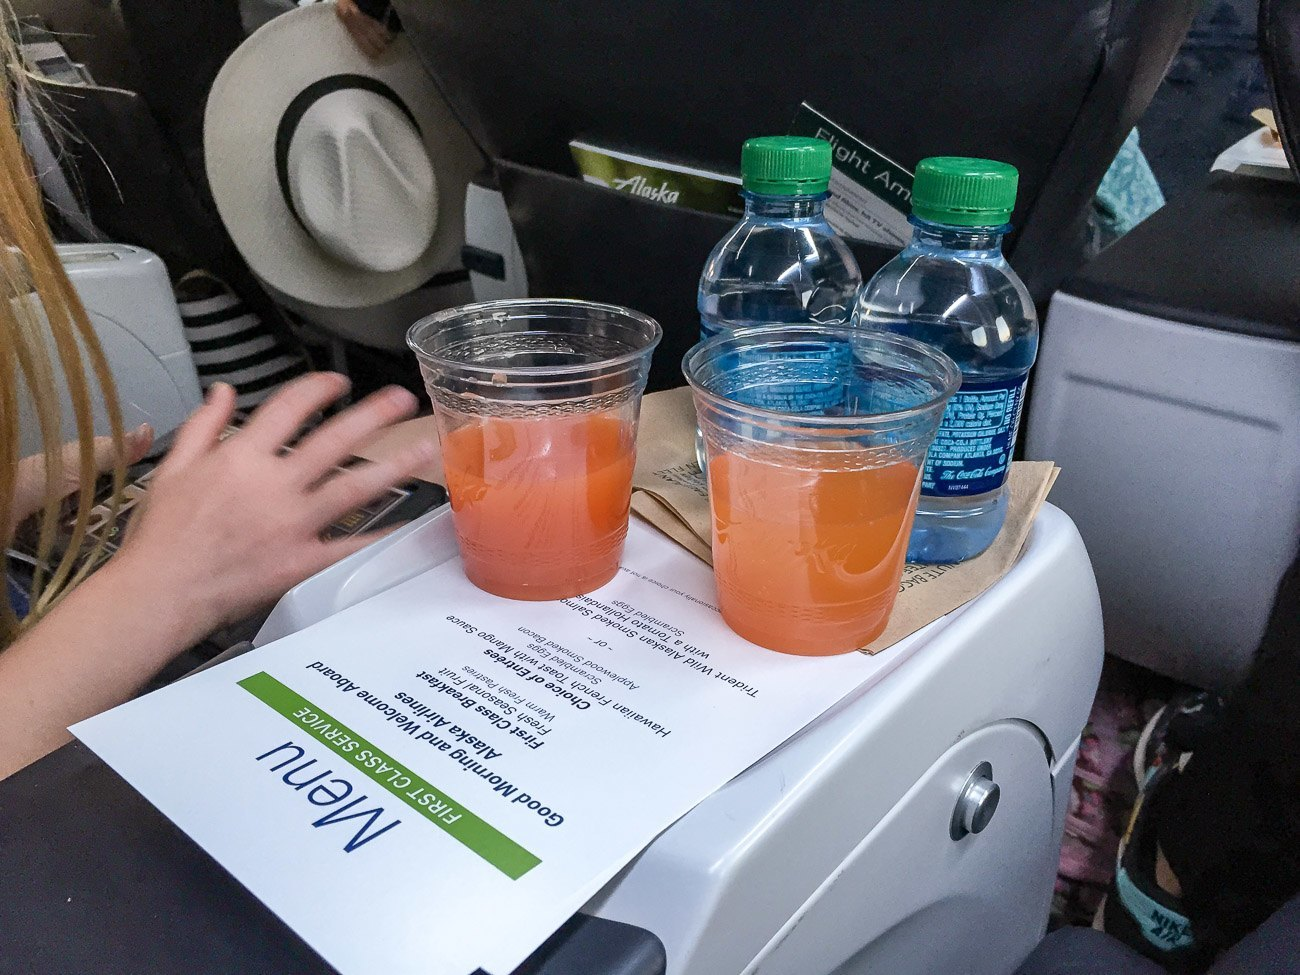 Alaska Airlines first class passionfruit mimosa served at San Diego International Airport before departure to Maui.